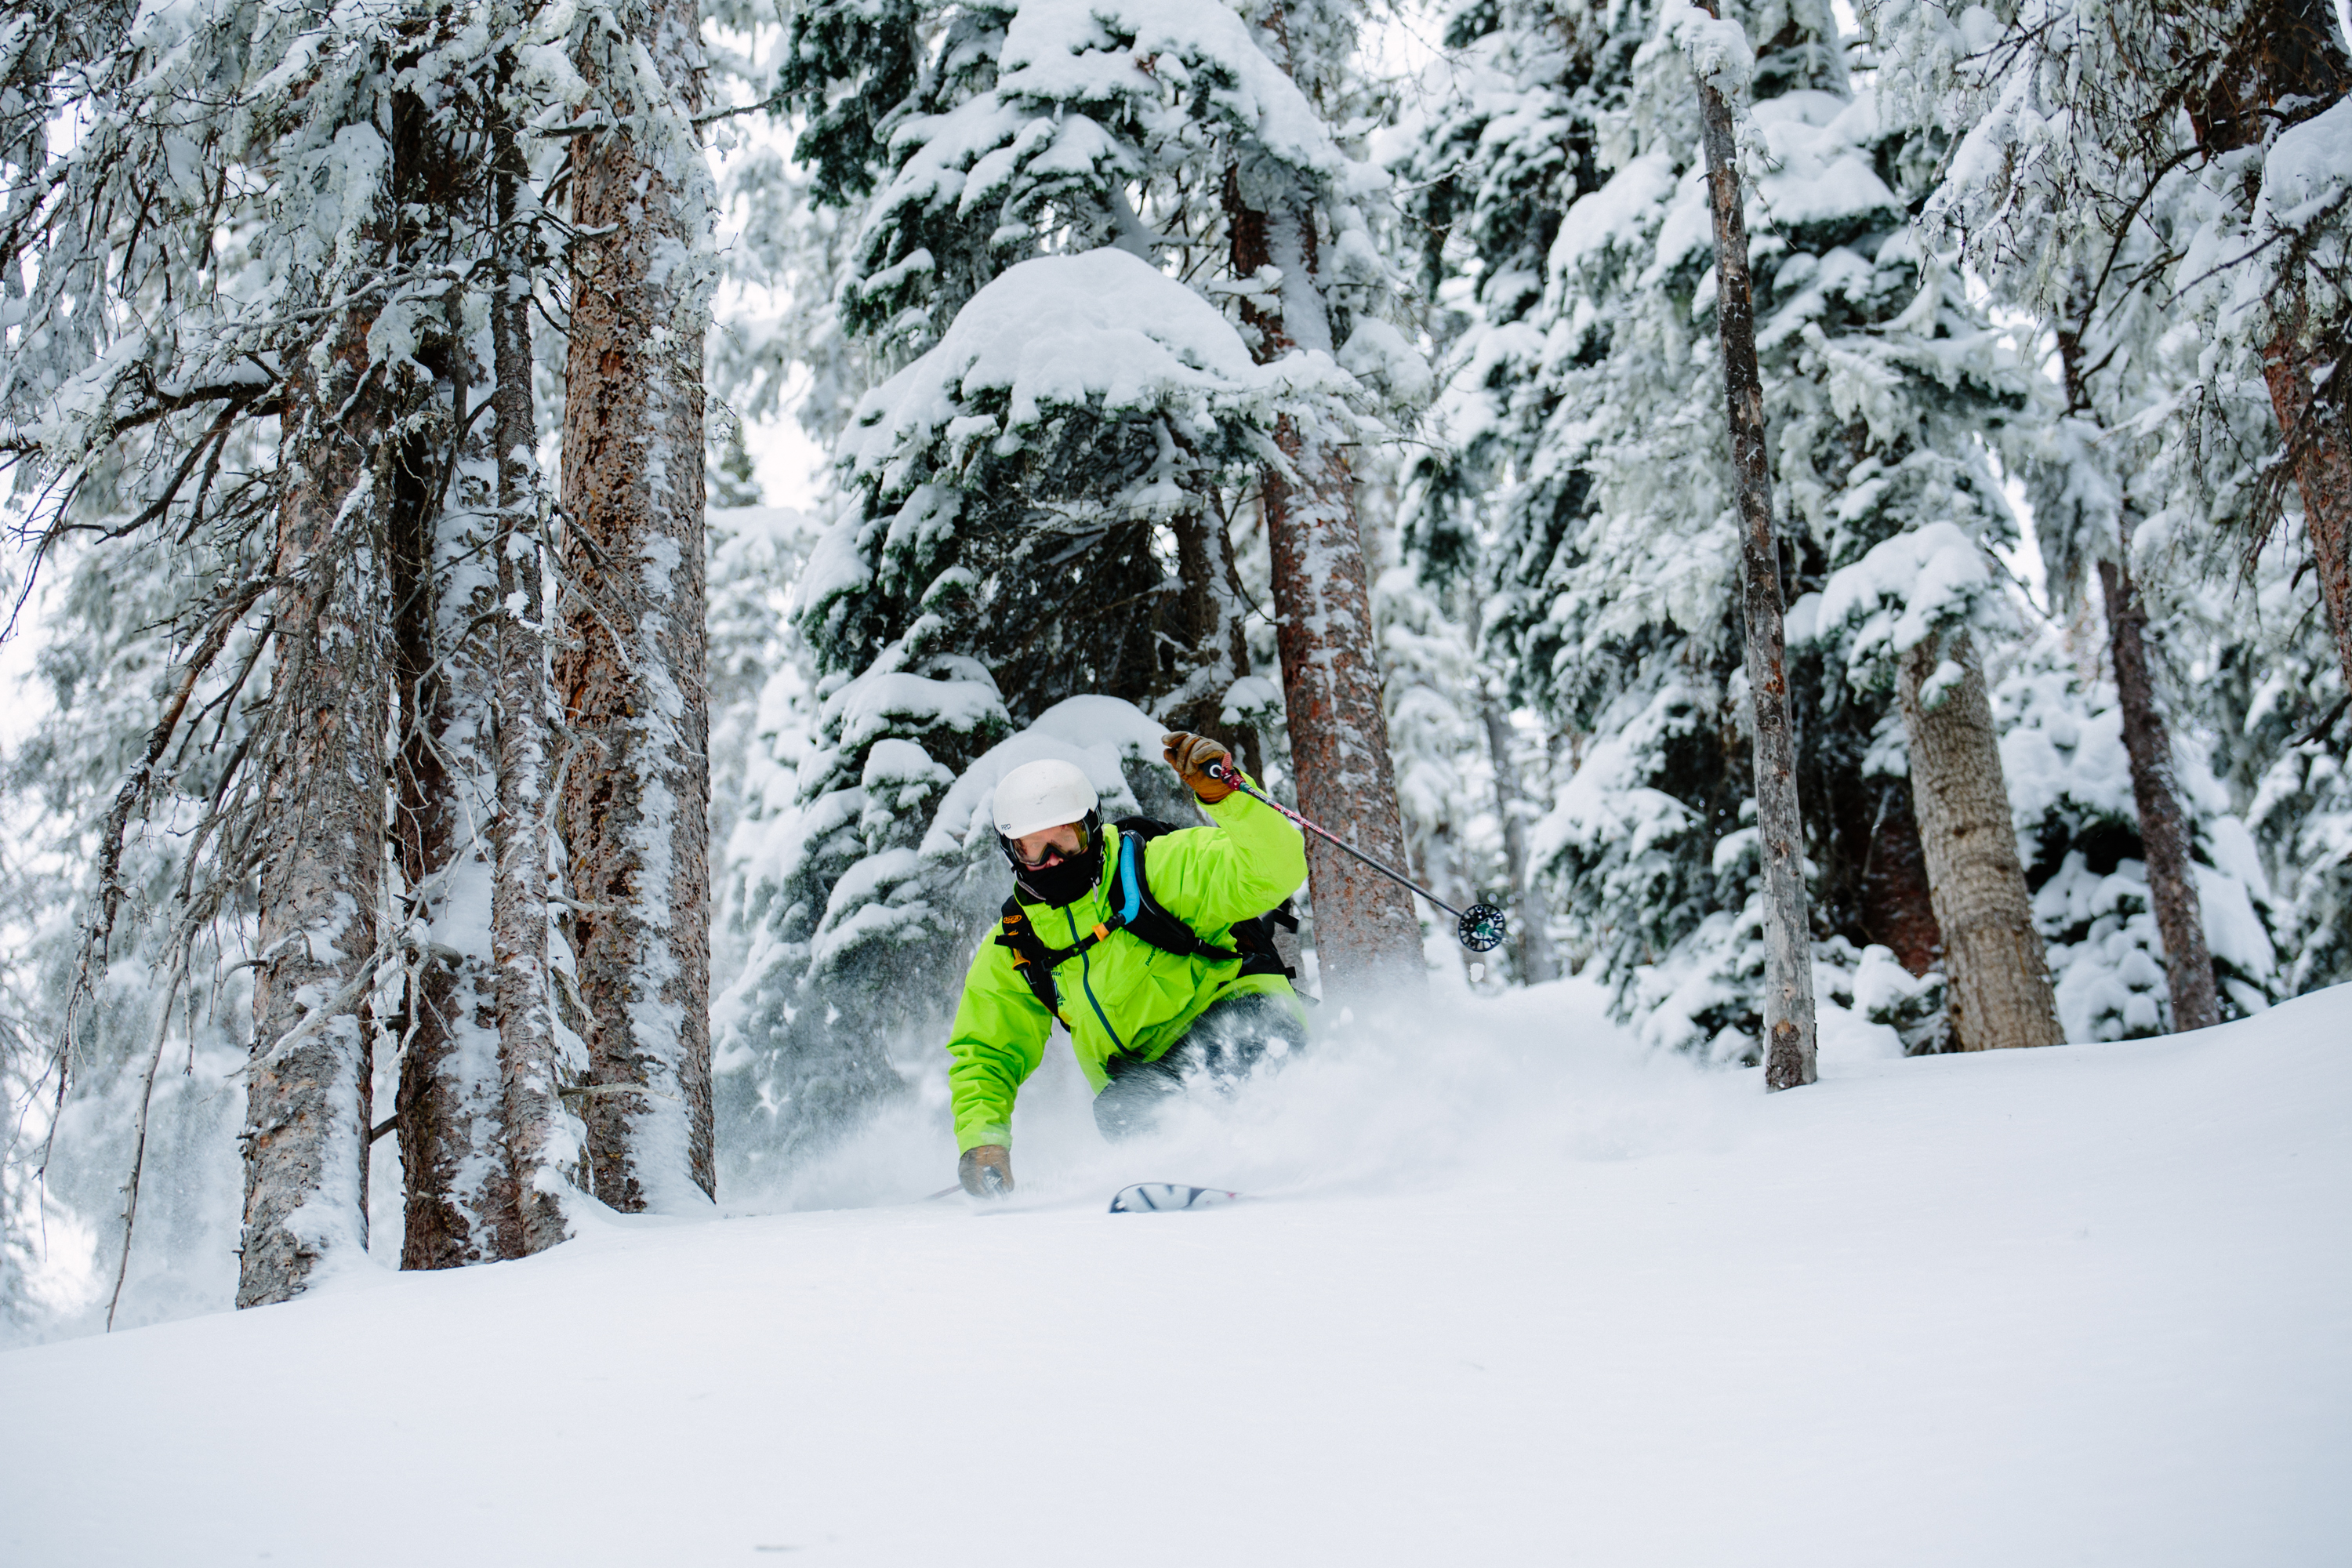 southwest snow: three days at purgatory and wolf creek resorts